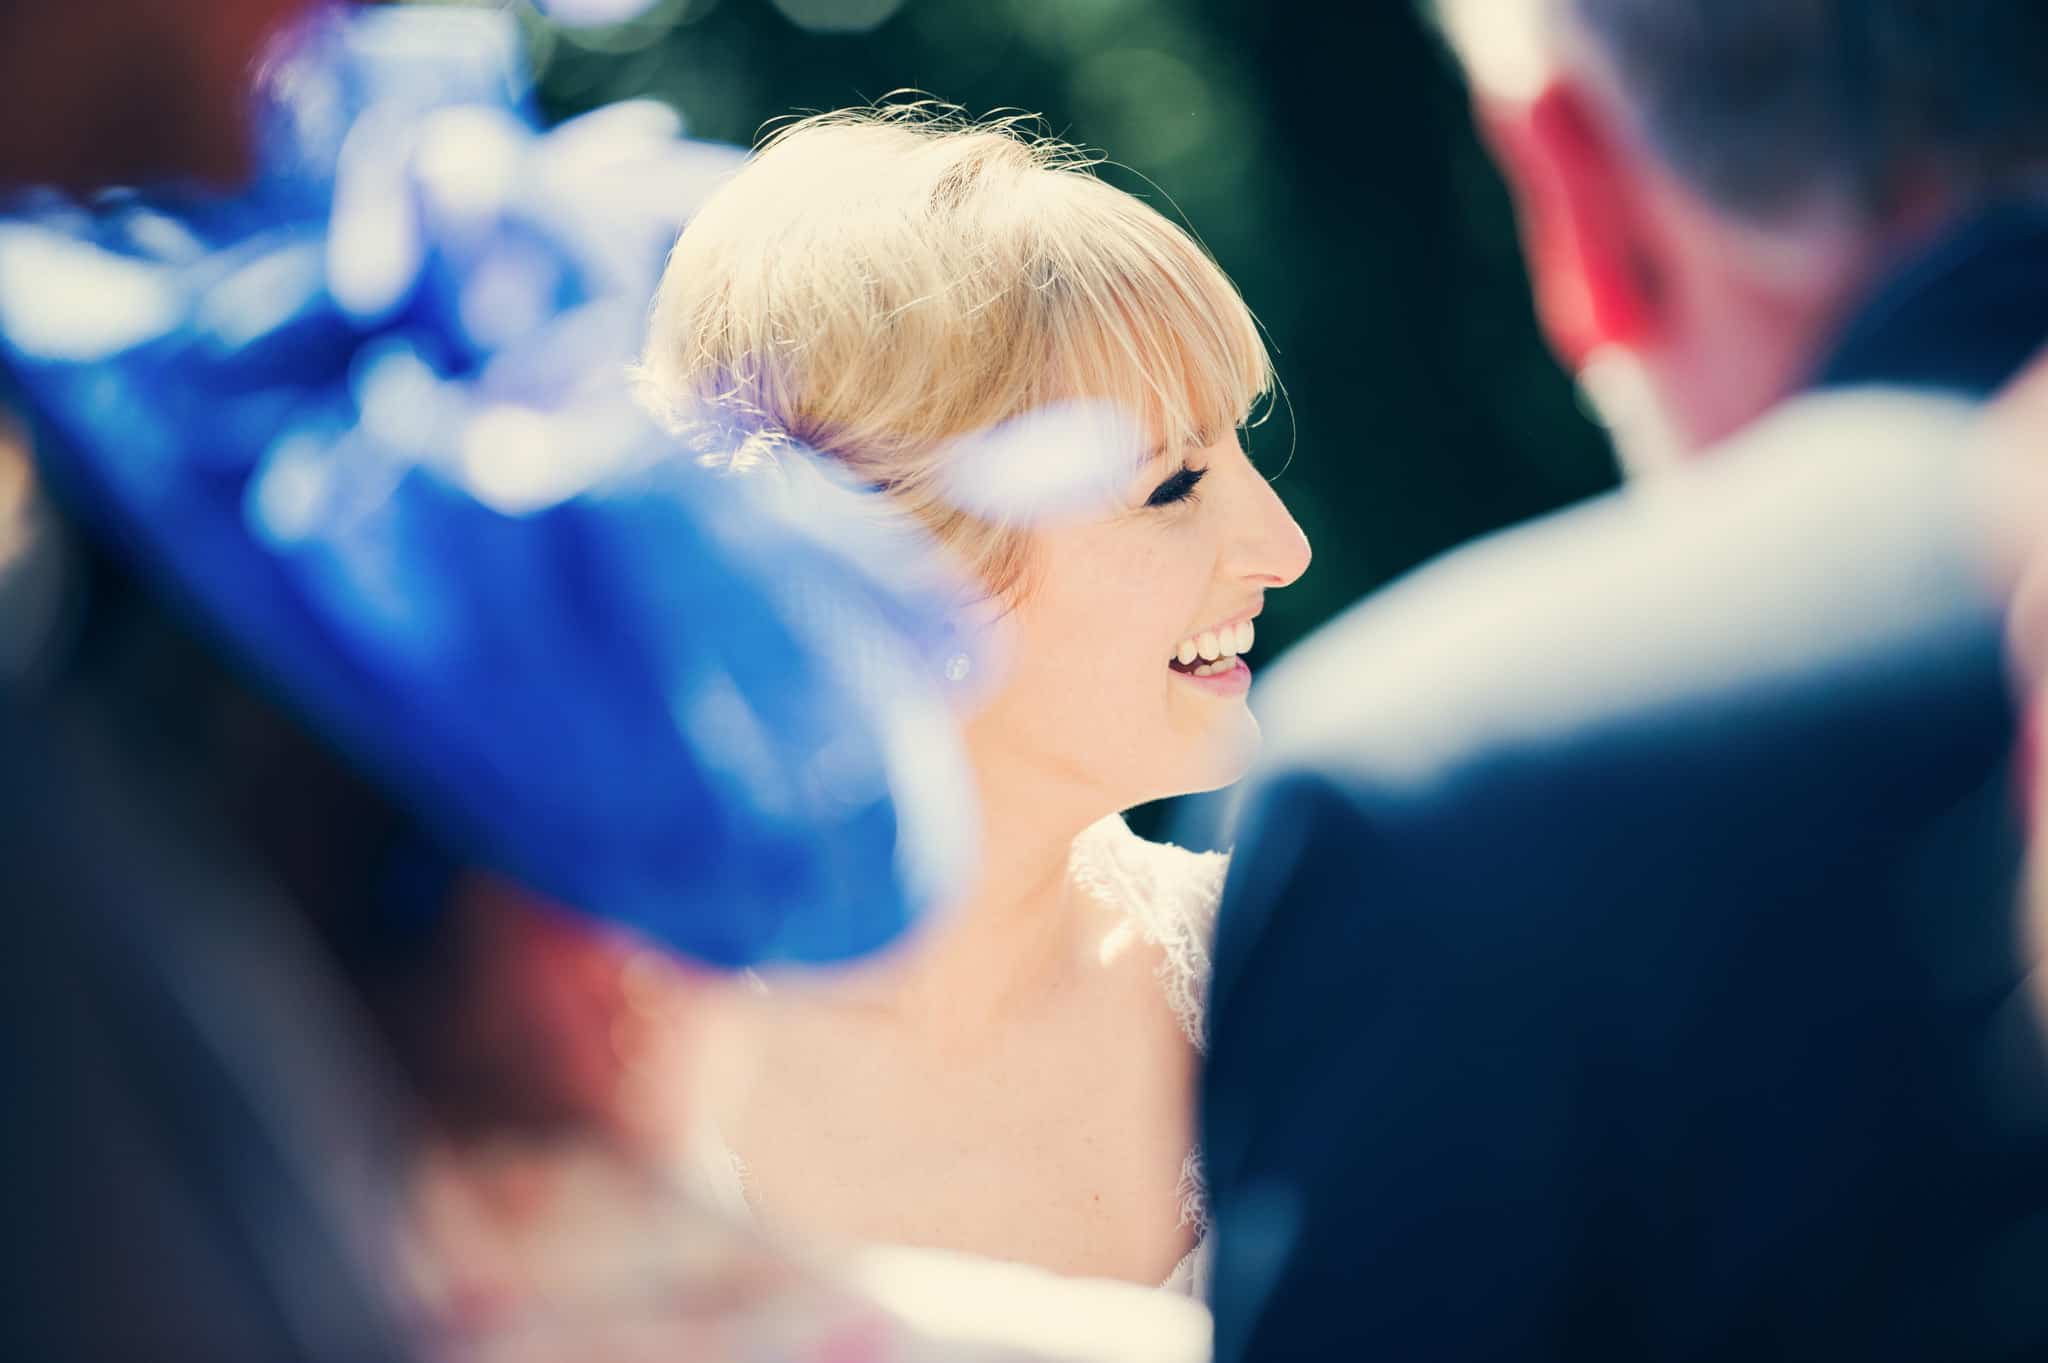 wedding-photography-morgans-hotel-swansea-south-wales (19)